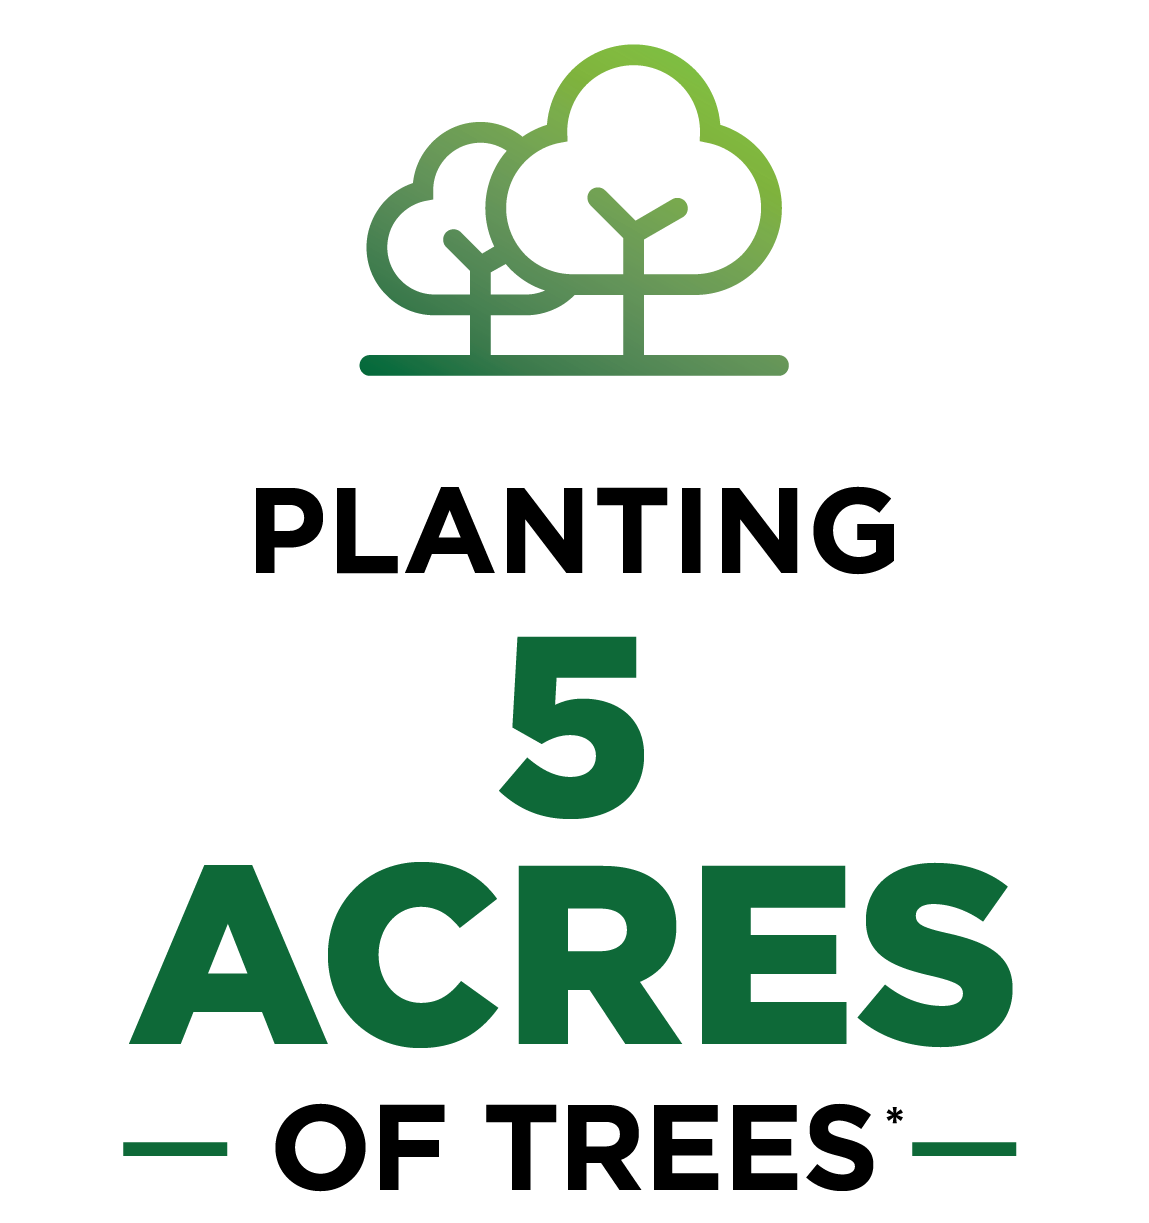 Planting 5 acres of trees